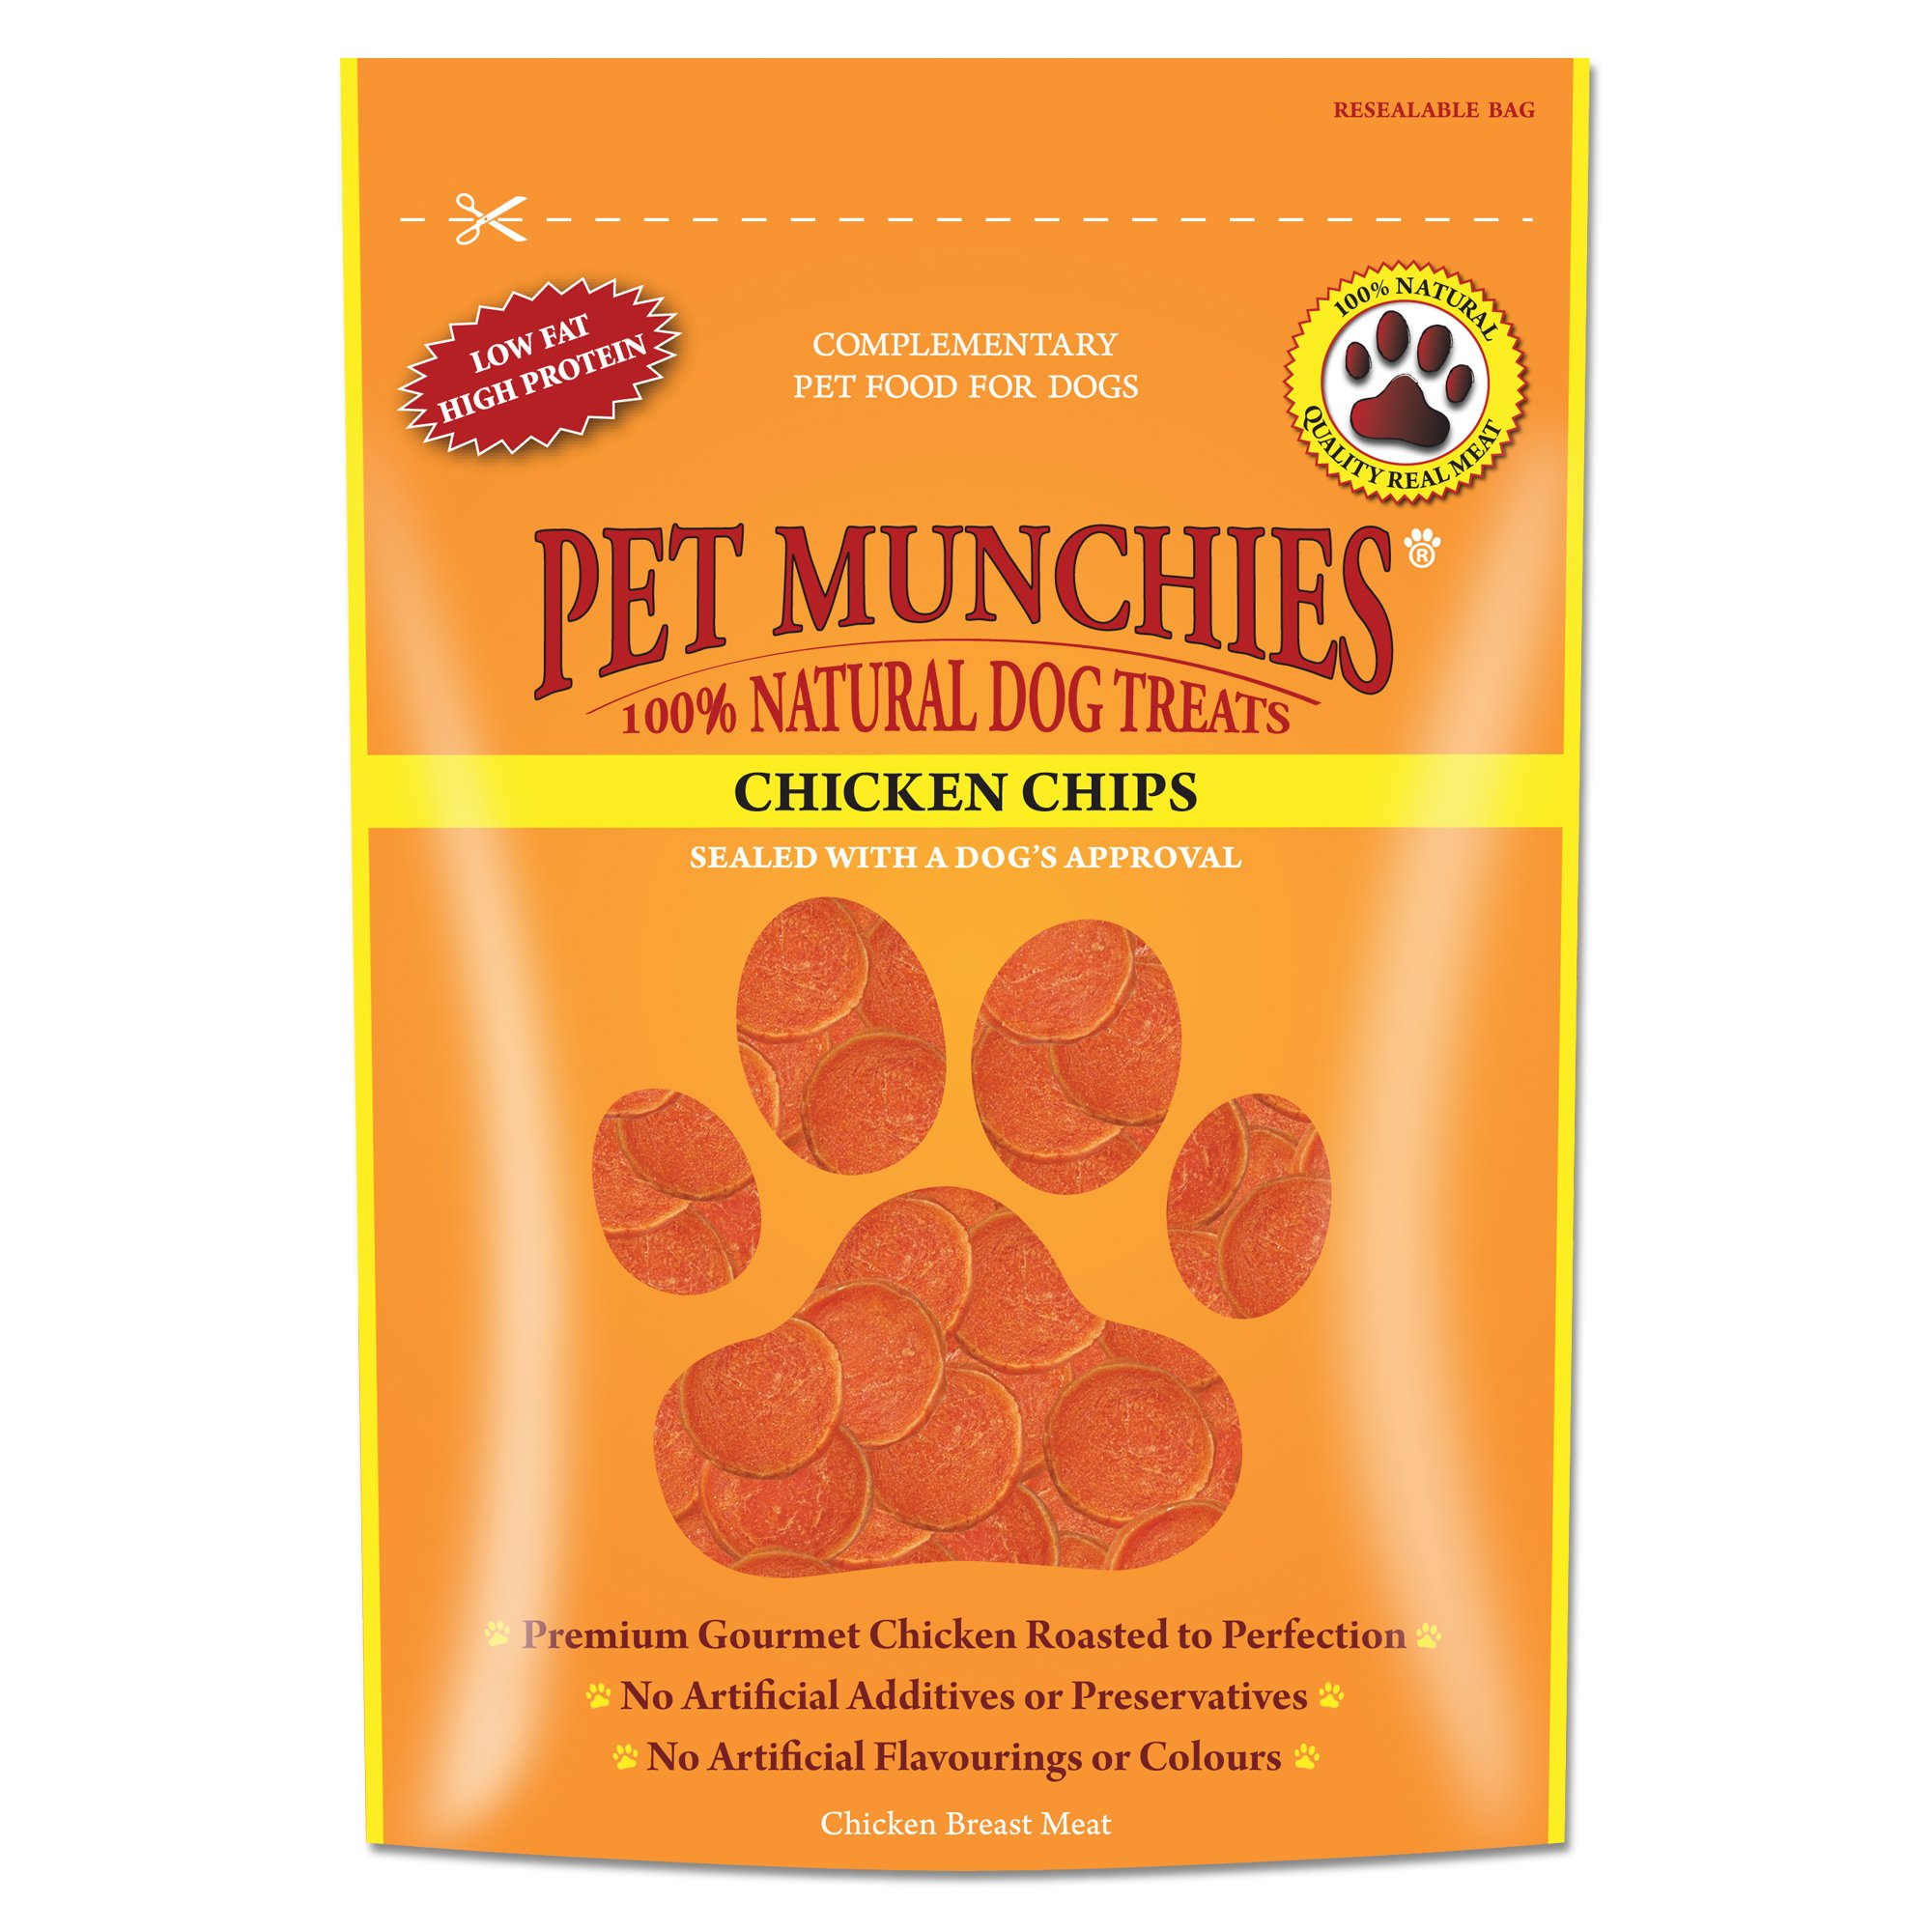 Pet Munchies Chicken Chips 100g by GroceryLand